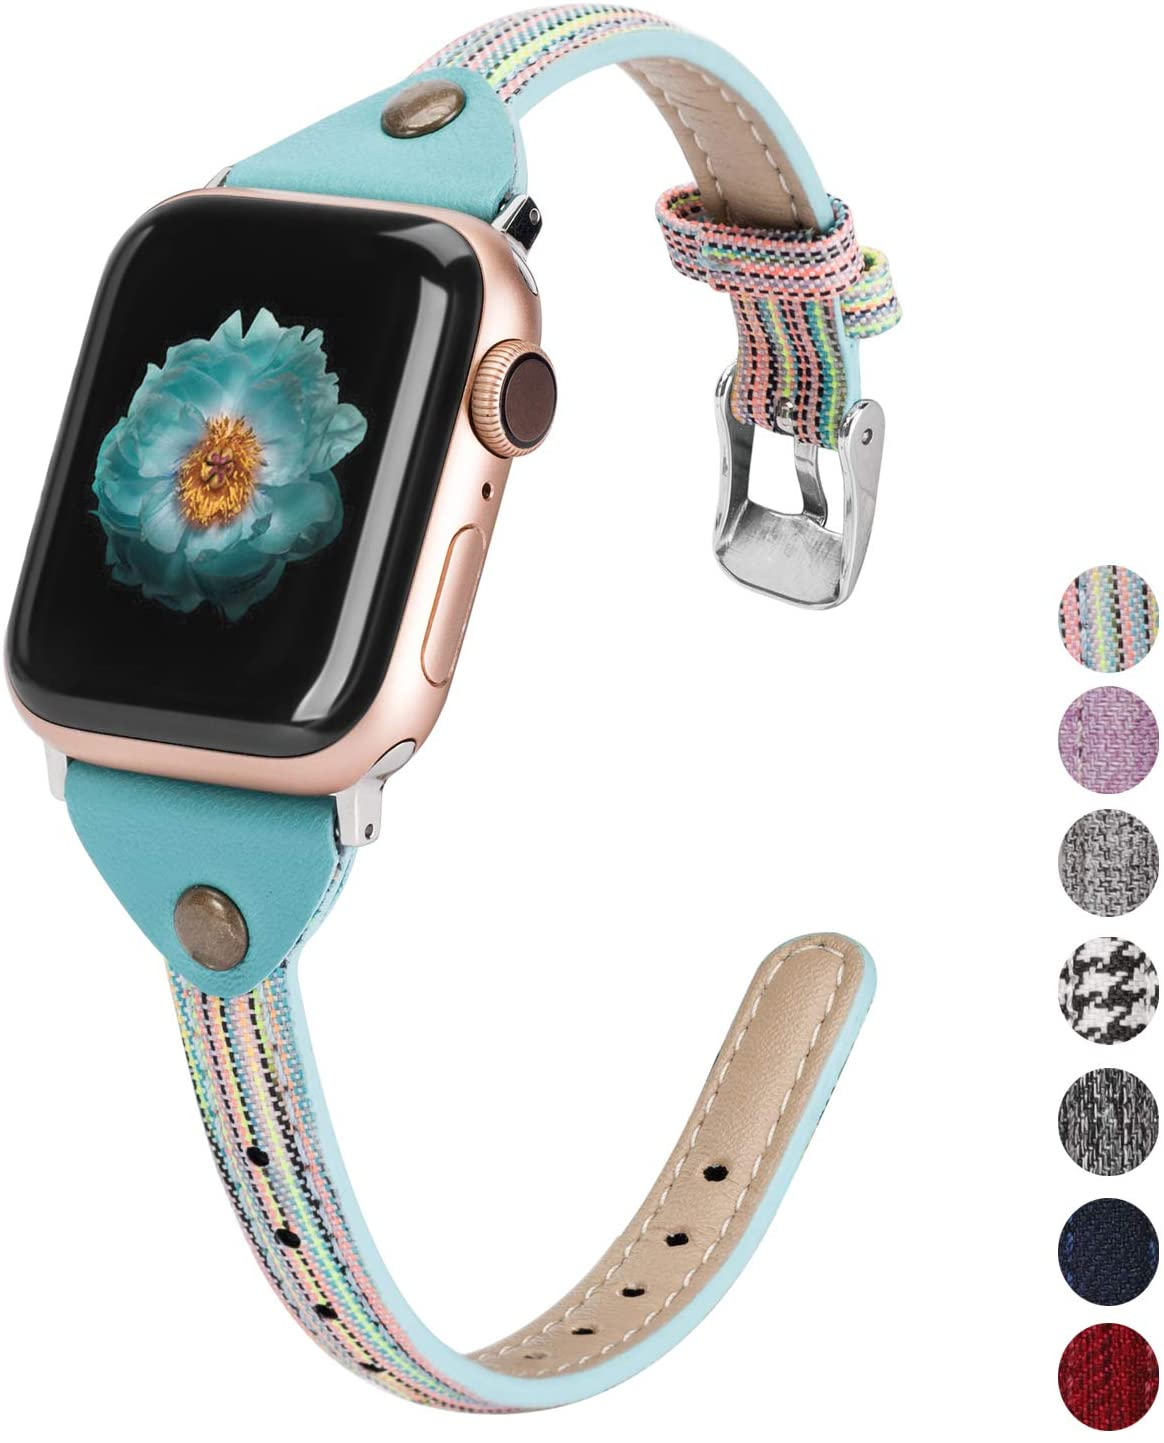 Wearlizer Compatible with Apple Watch Bands 38mm 40mm Woven Canvas Womens Slim Fabric Cloth Wristband Feminine Thick Thin Skinny Classic Durable Strap for iWatch Series 5 4 3 2 1-Colorful